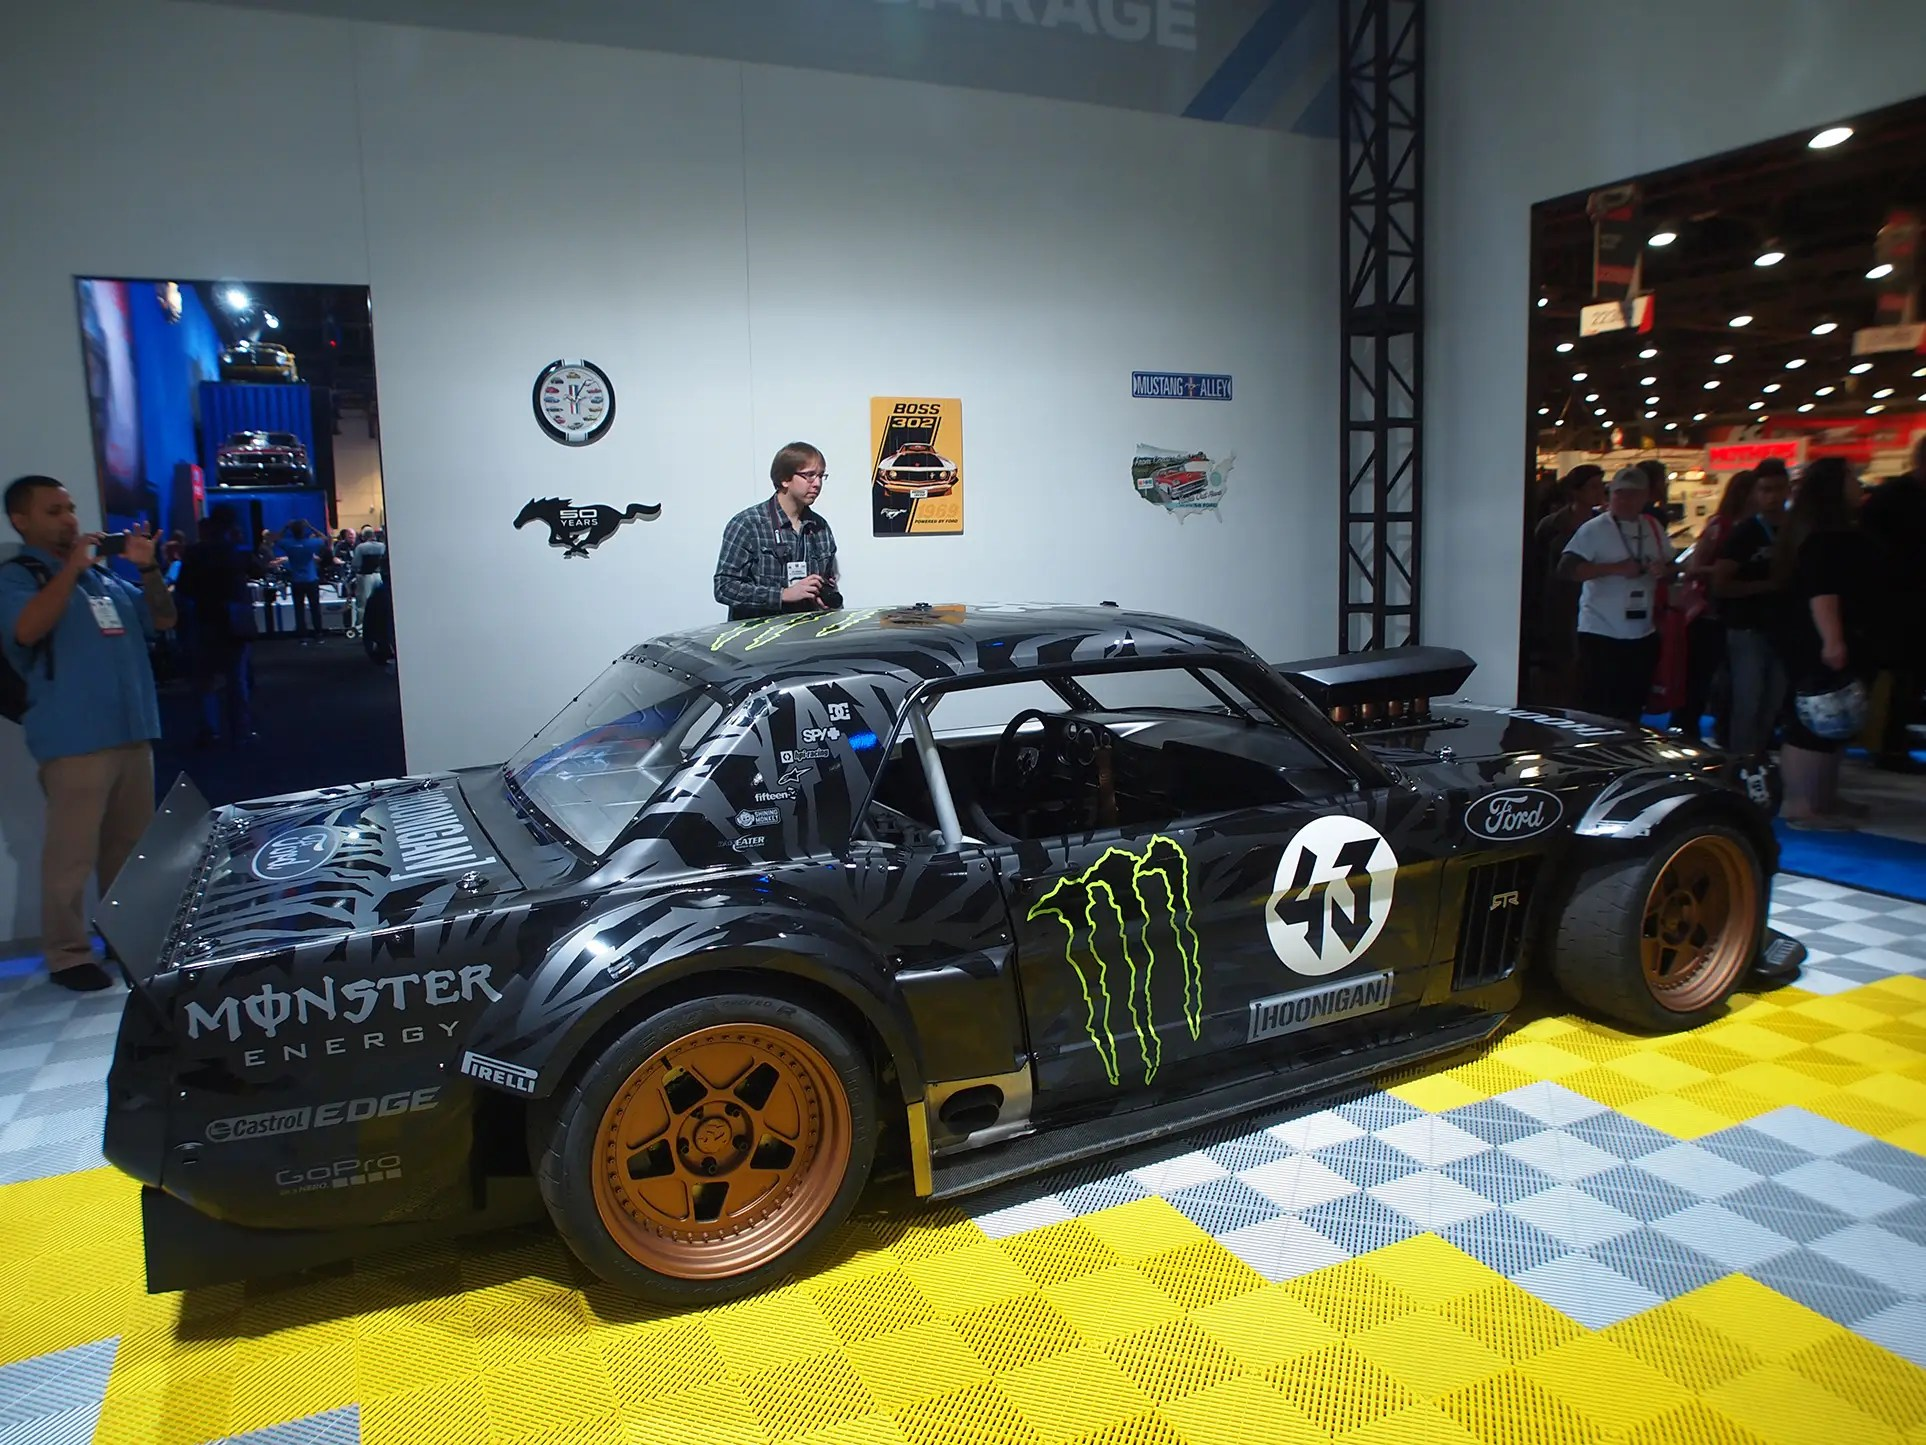 Here's Ken Block's Mustang from another angle.